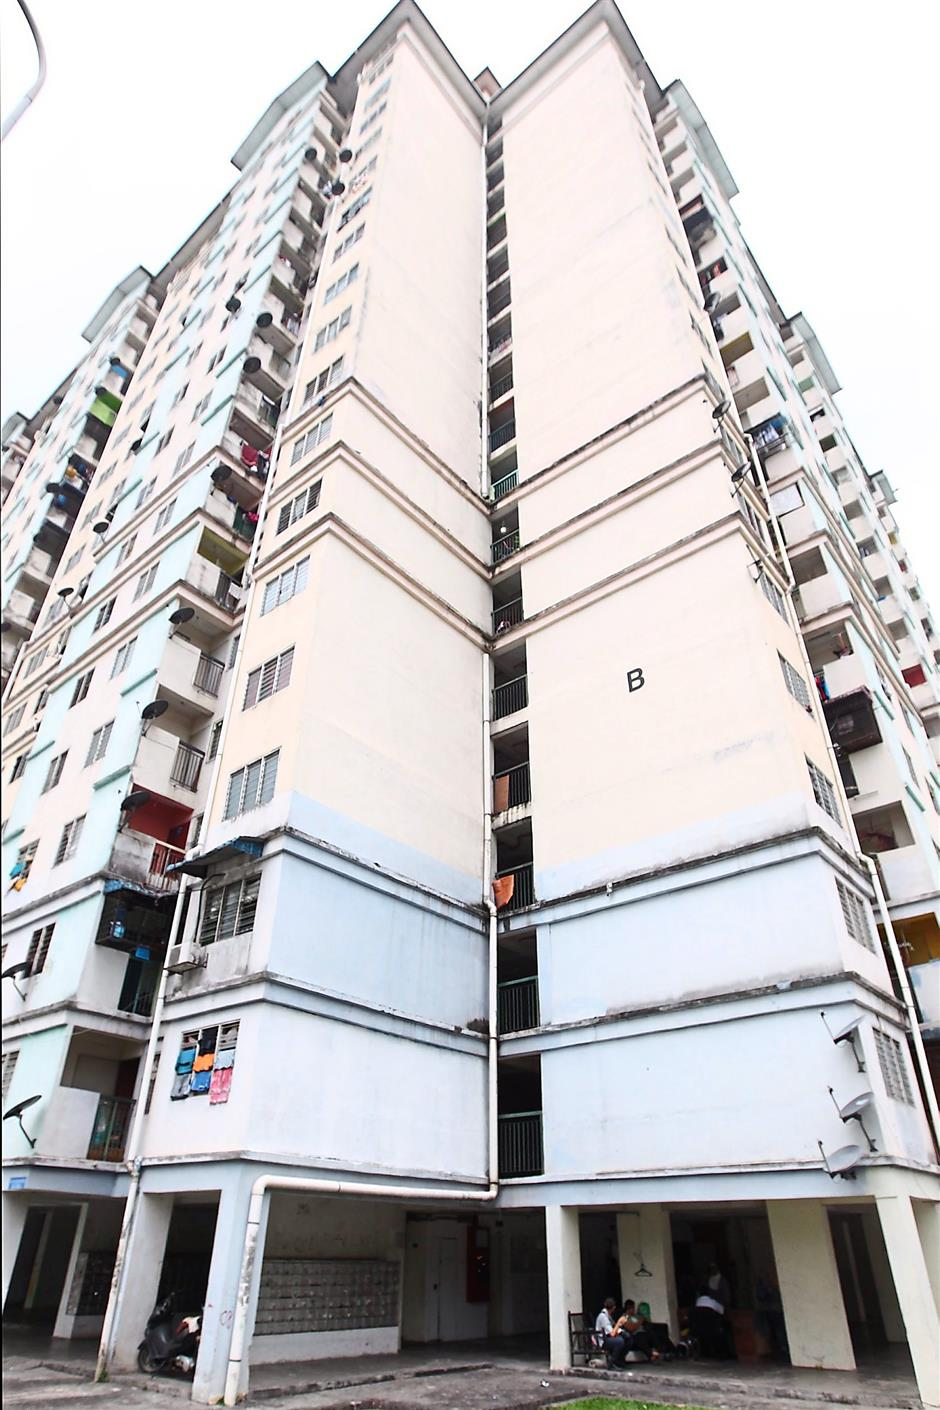 Tragic incident: Block B of the Kota Damansara PPR flats, where the five-year-old boy fell from the sixth floor.